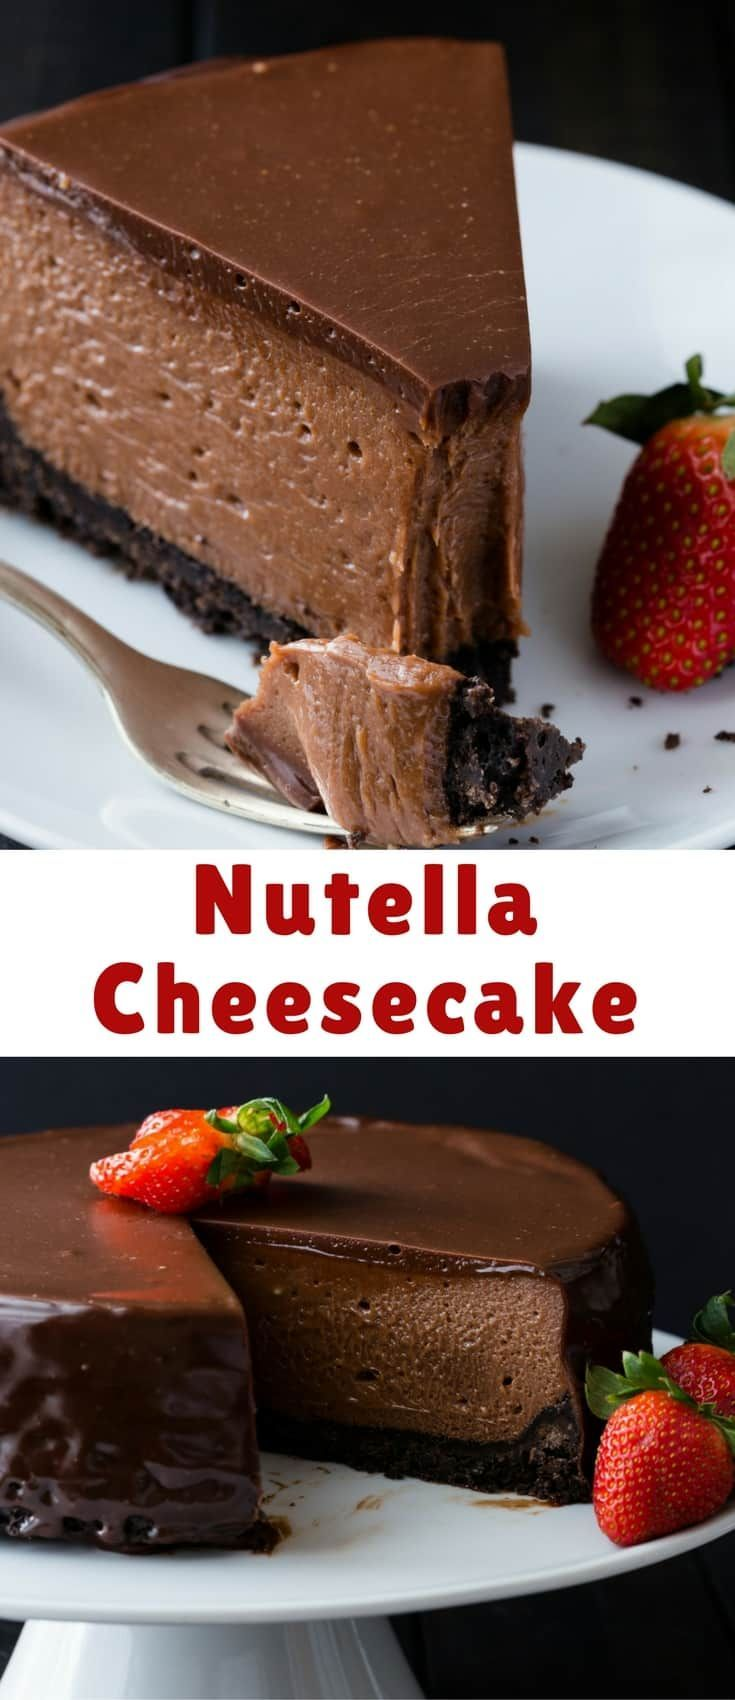 This Nutella Cheesecake tastes like it came from a gourmet bakery. It's decadent, creamy, and full of Nutella flavor.